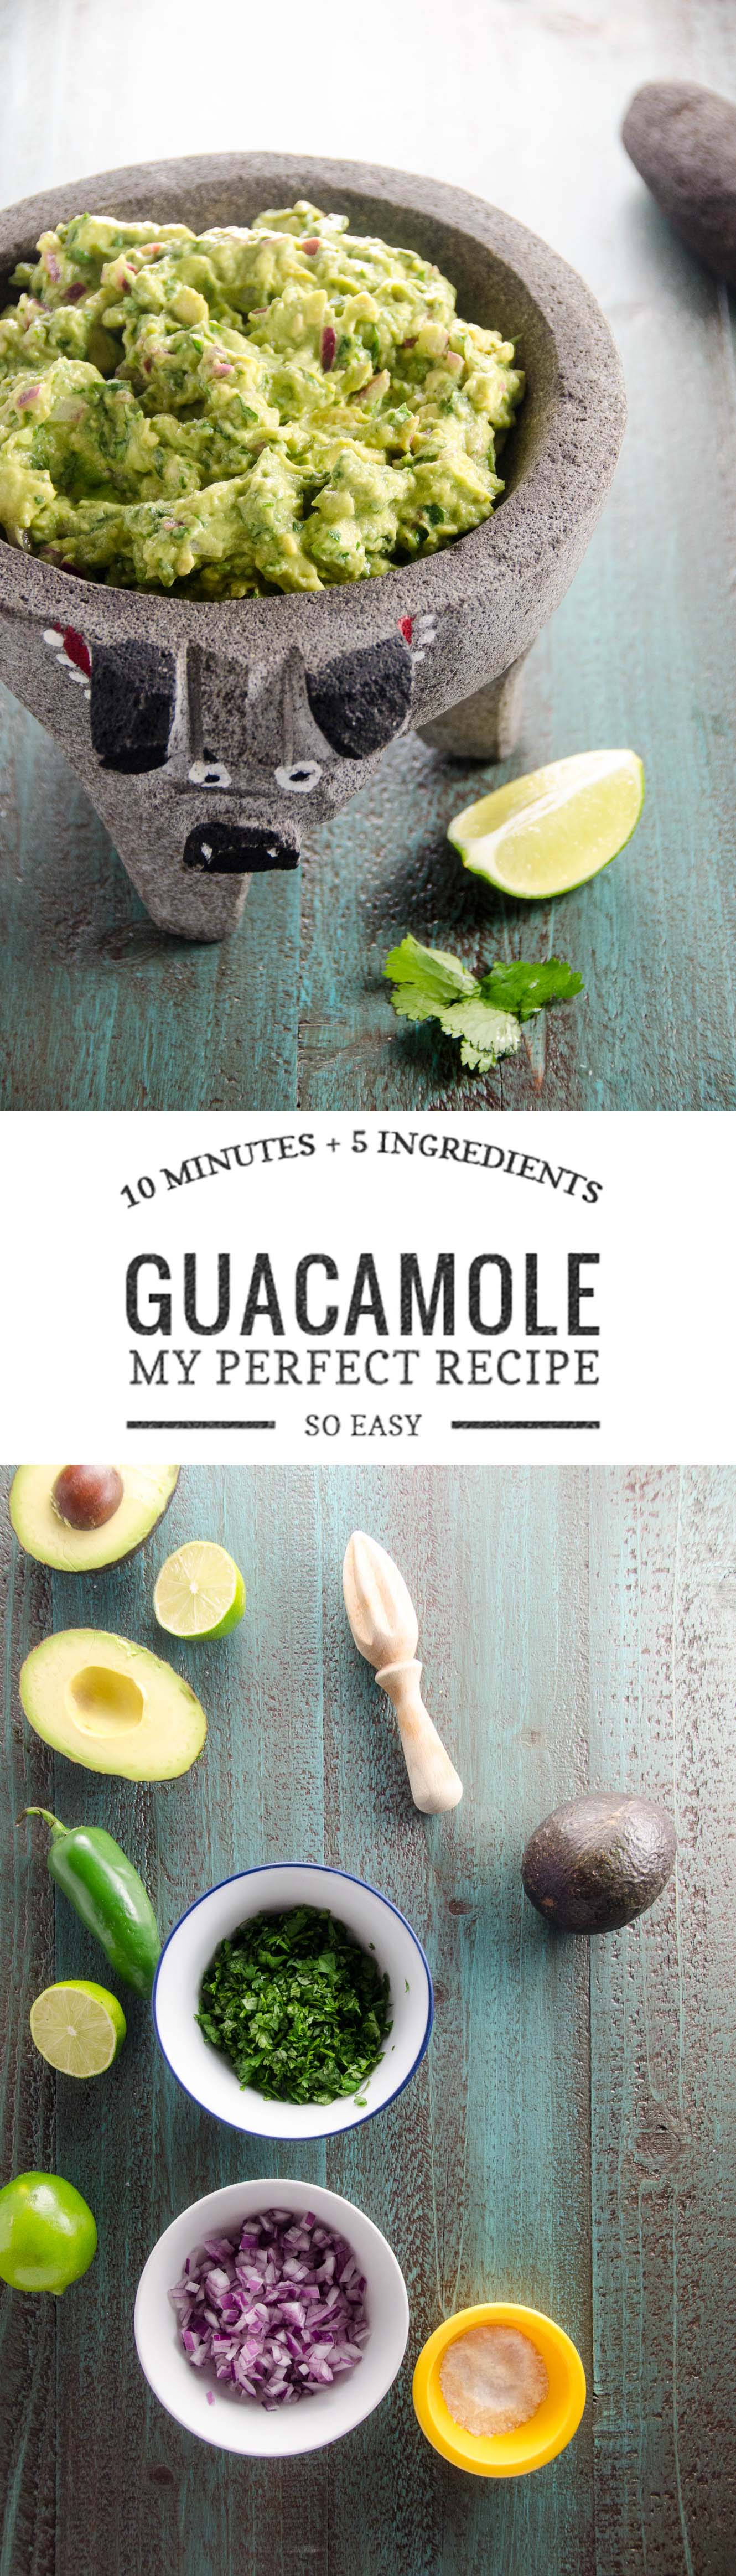 This easy recipe for perfect guacamole will disappear from your next party in no time. Just 10 minutes and 5 ingredients.